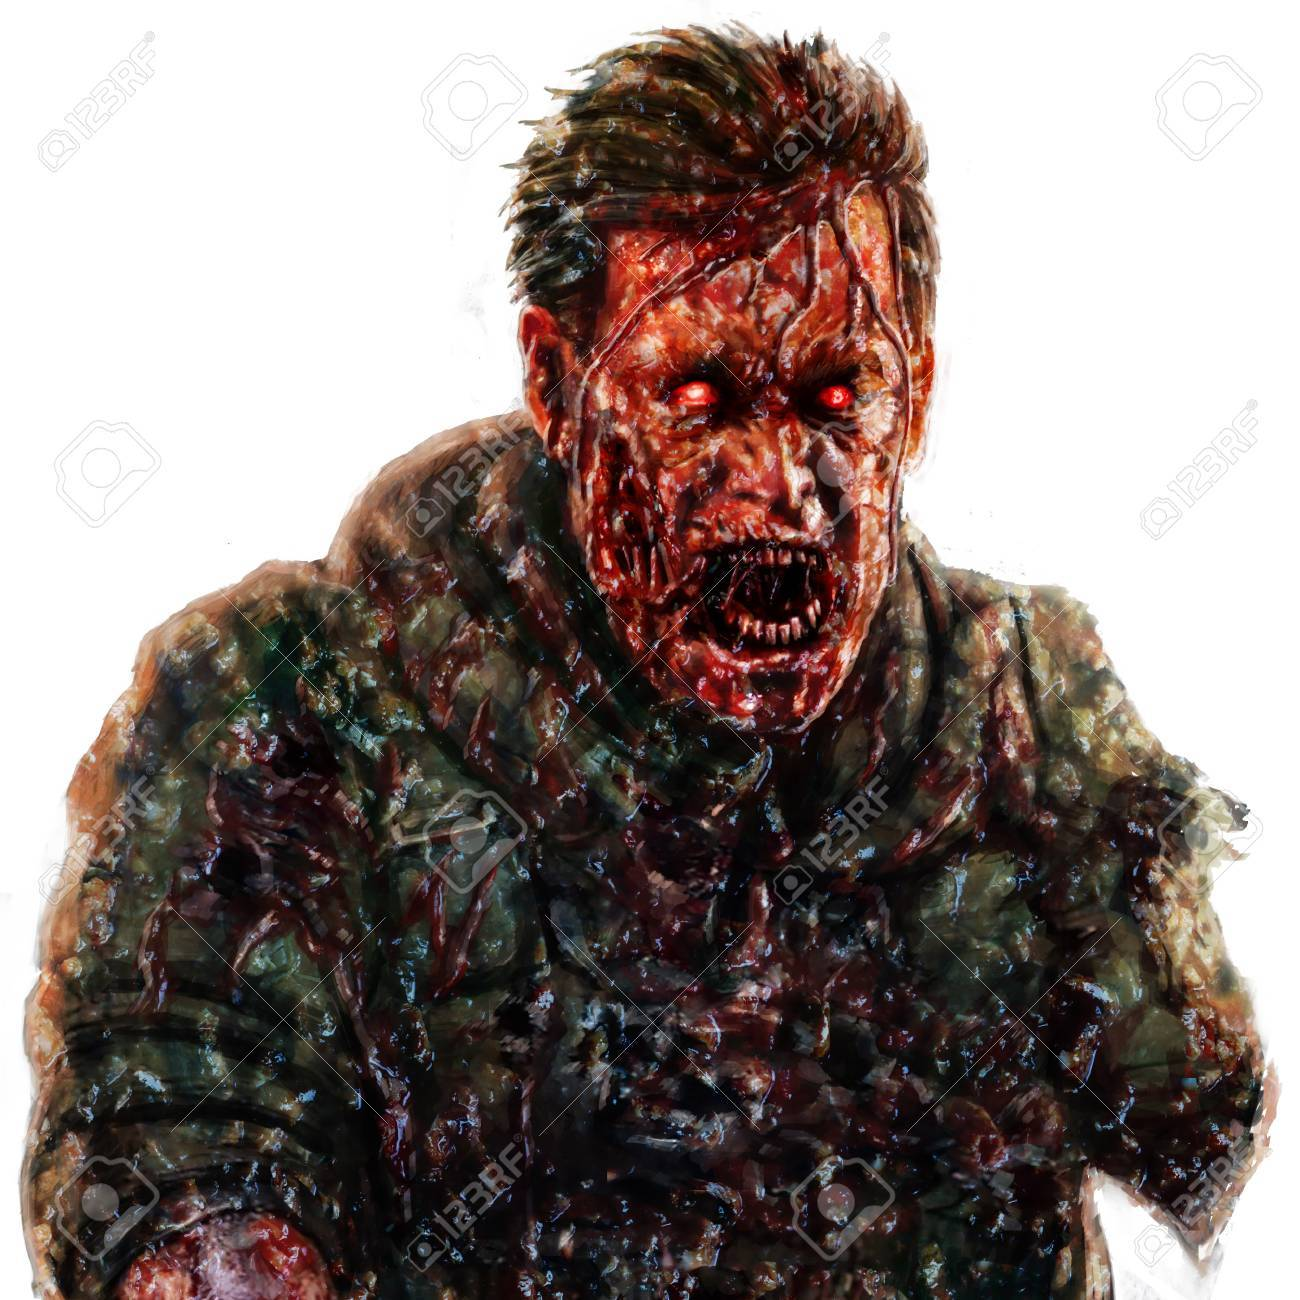 87730379-angry-zombie-soldier-shout-conc